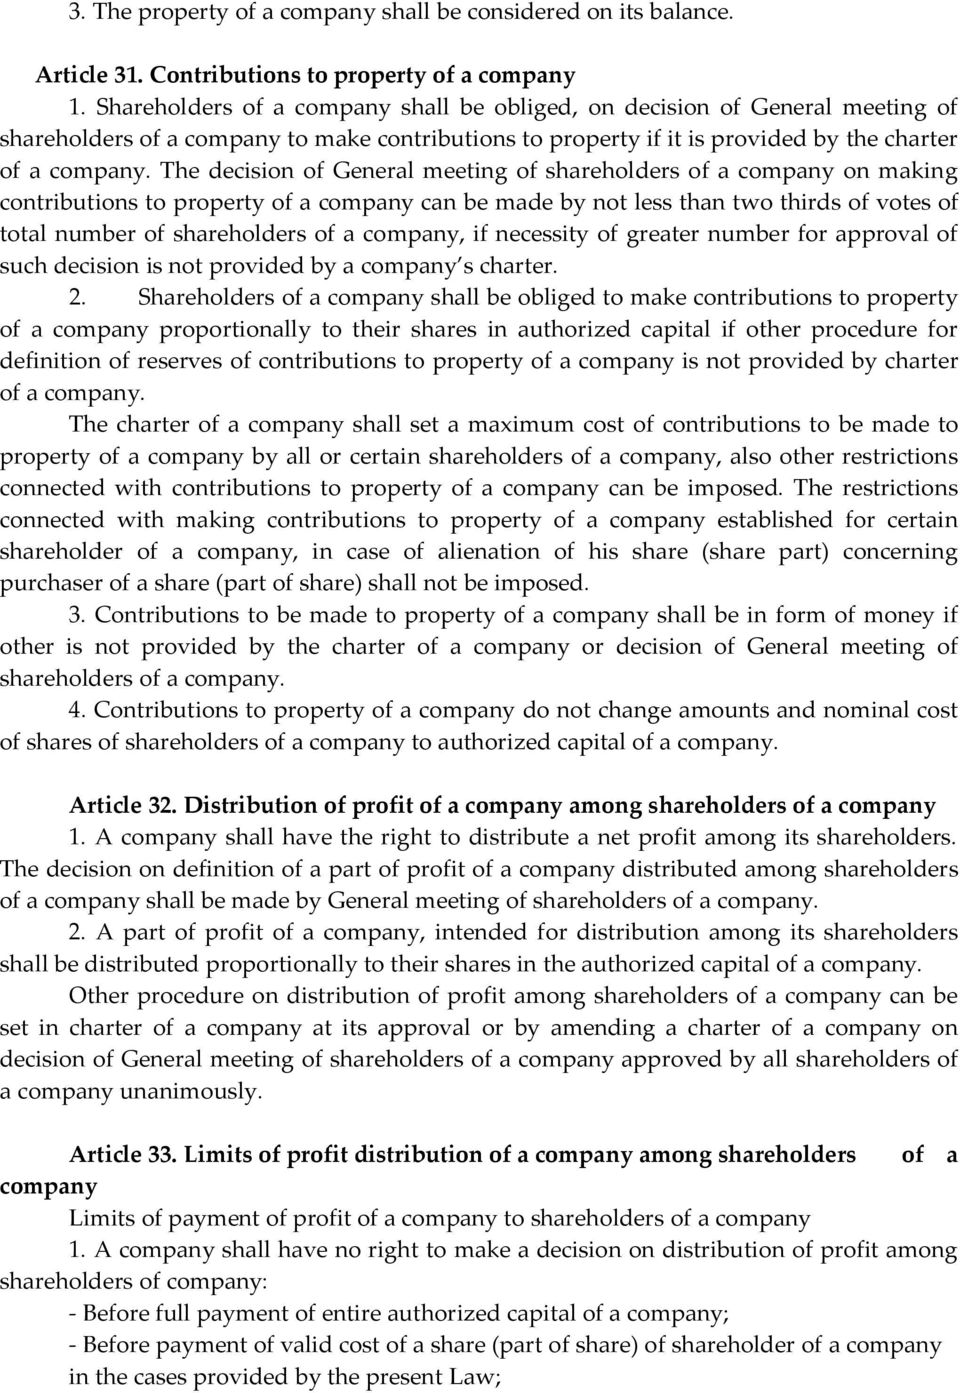 The decision of General meeting of shareholders of a company on making contributions to property of a company can be made by not less than two thirds of votes of total number of shareholders of a